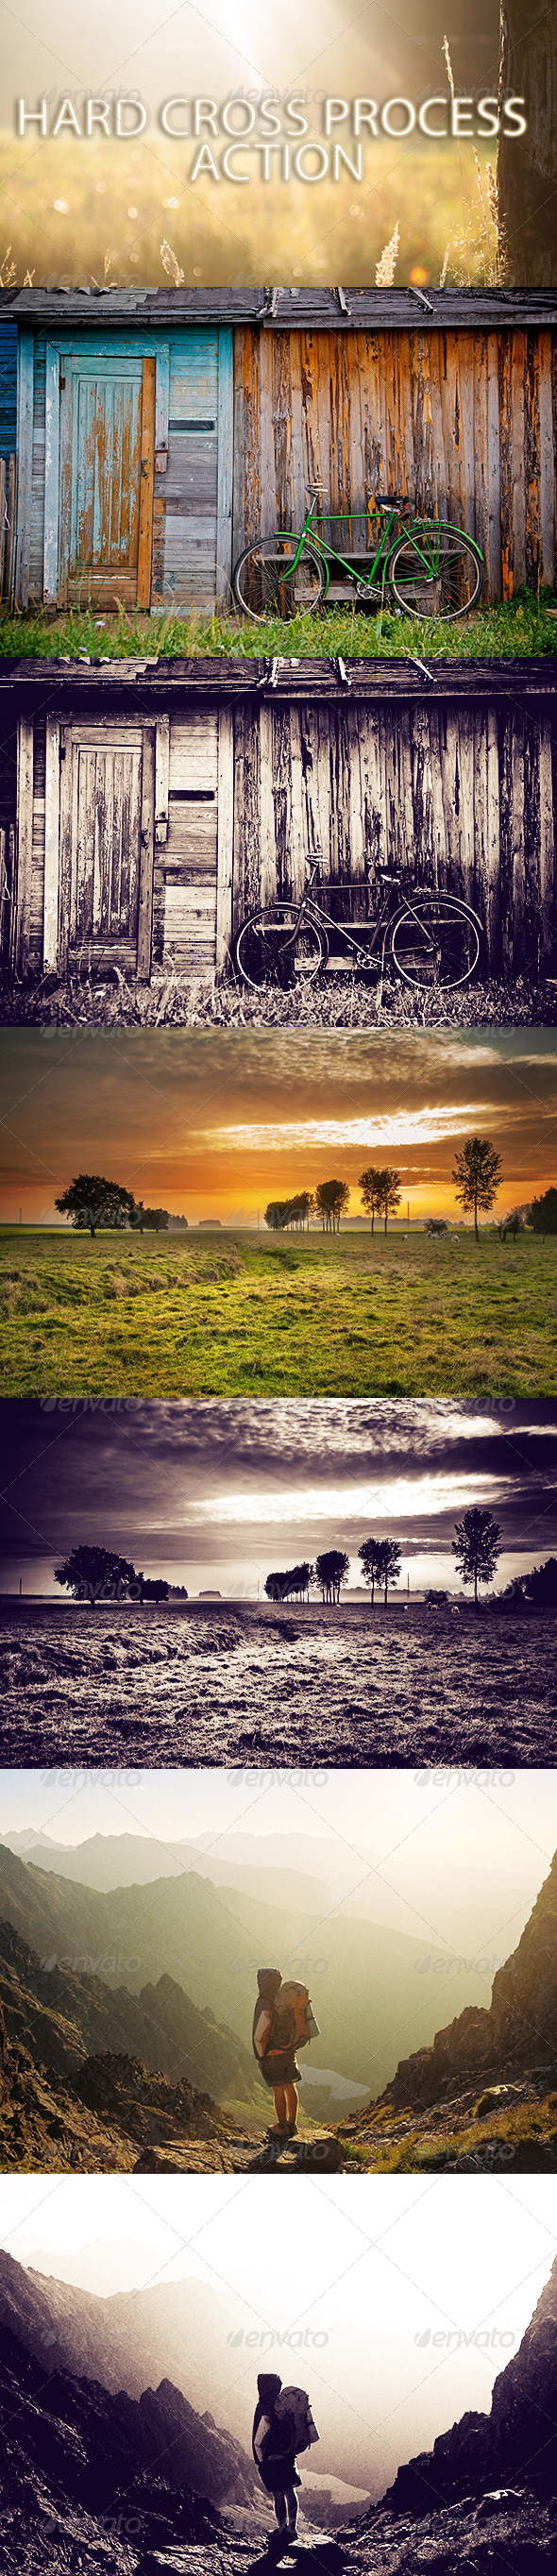 GraphicRiver Hard Cross Process Action 6950525